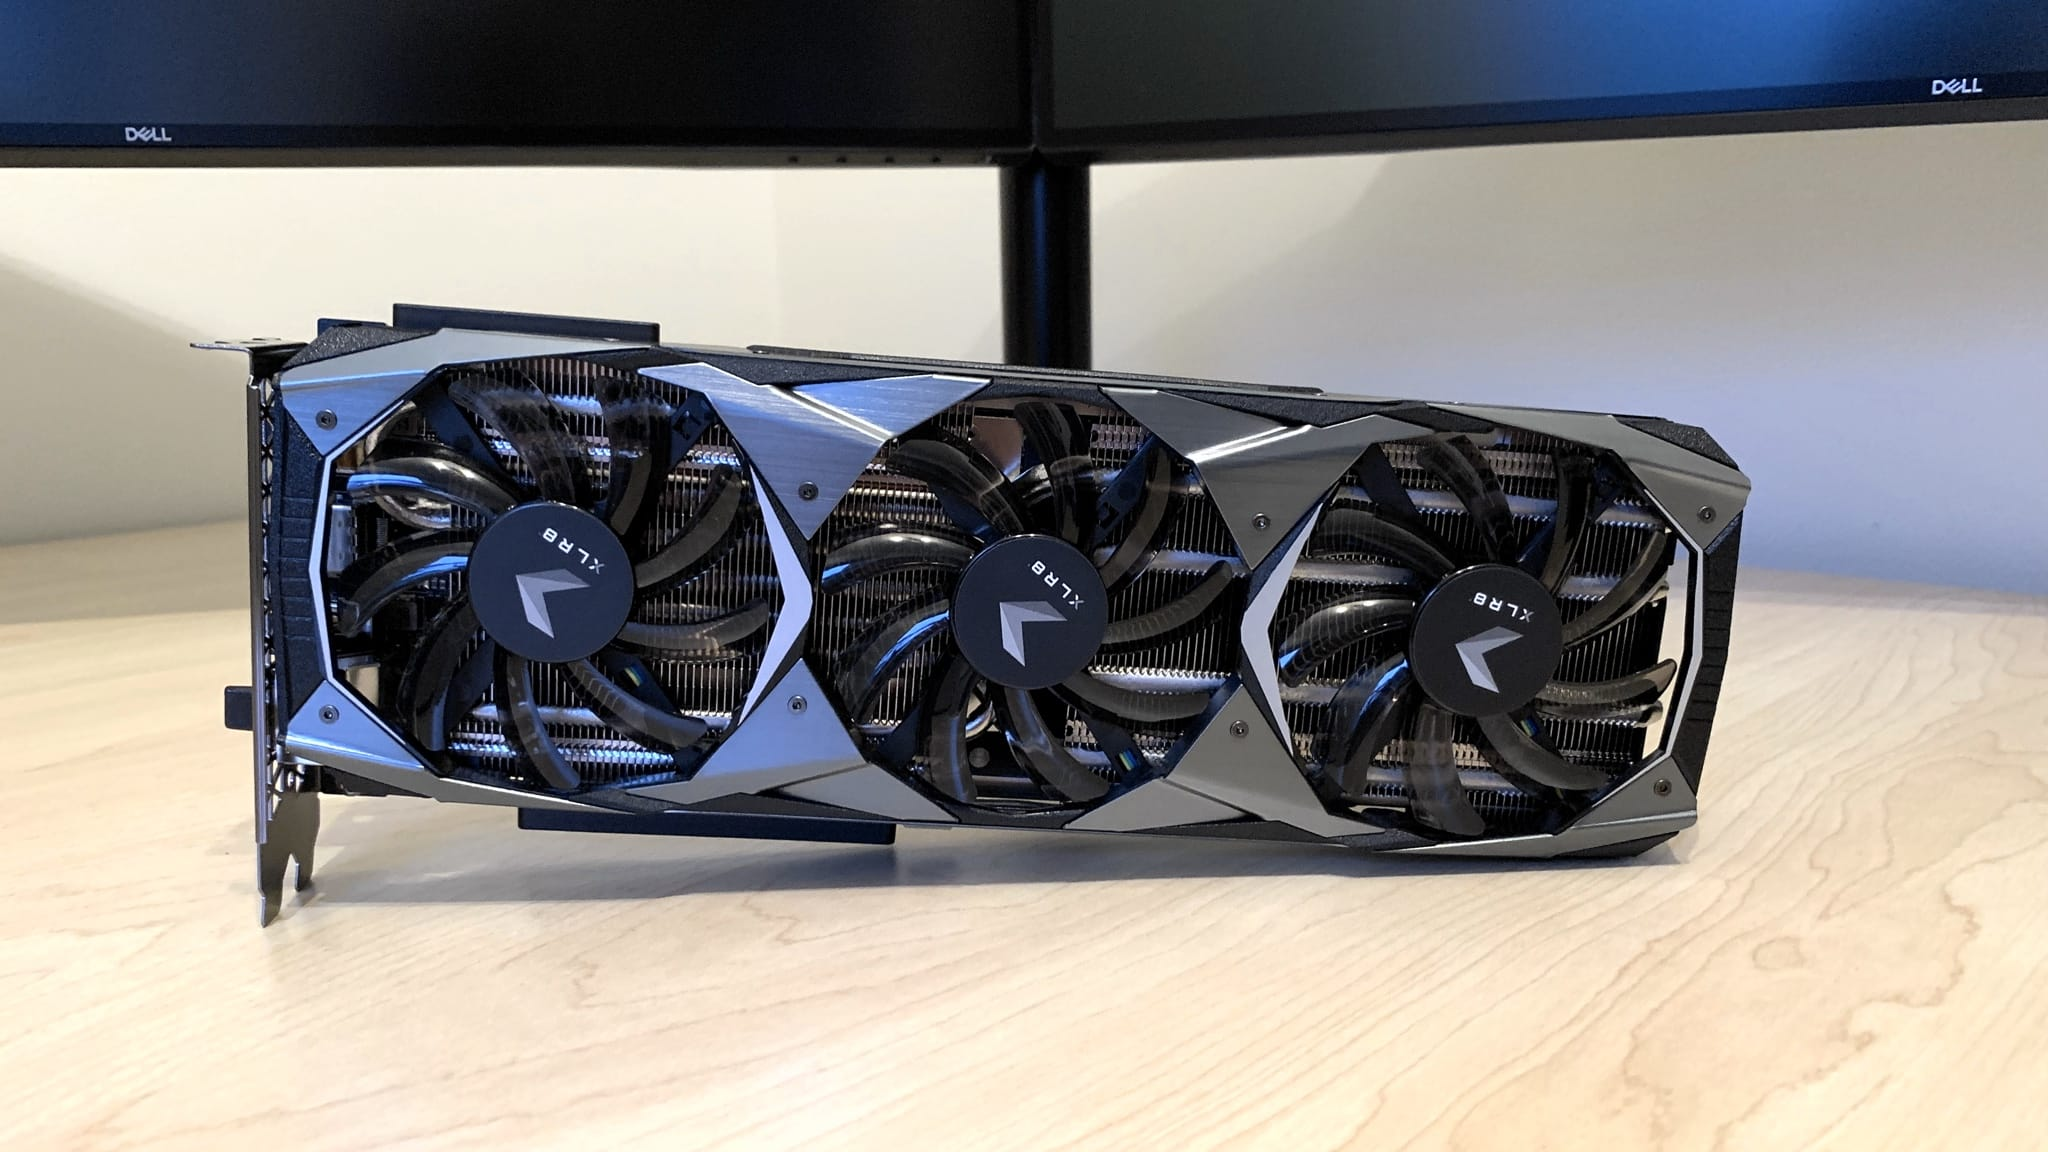 PNY GeForce RTX 2080 Ti